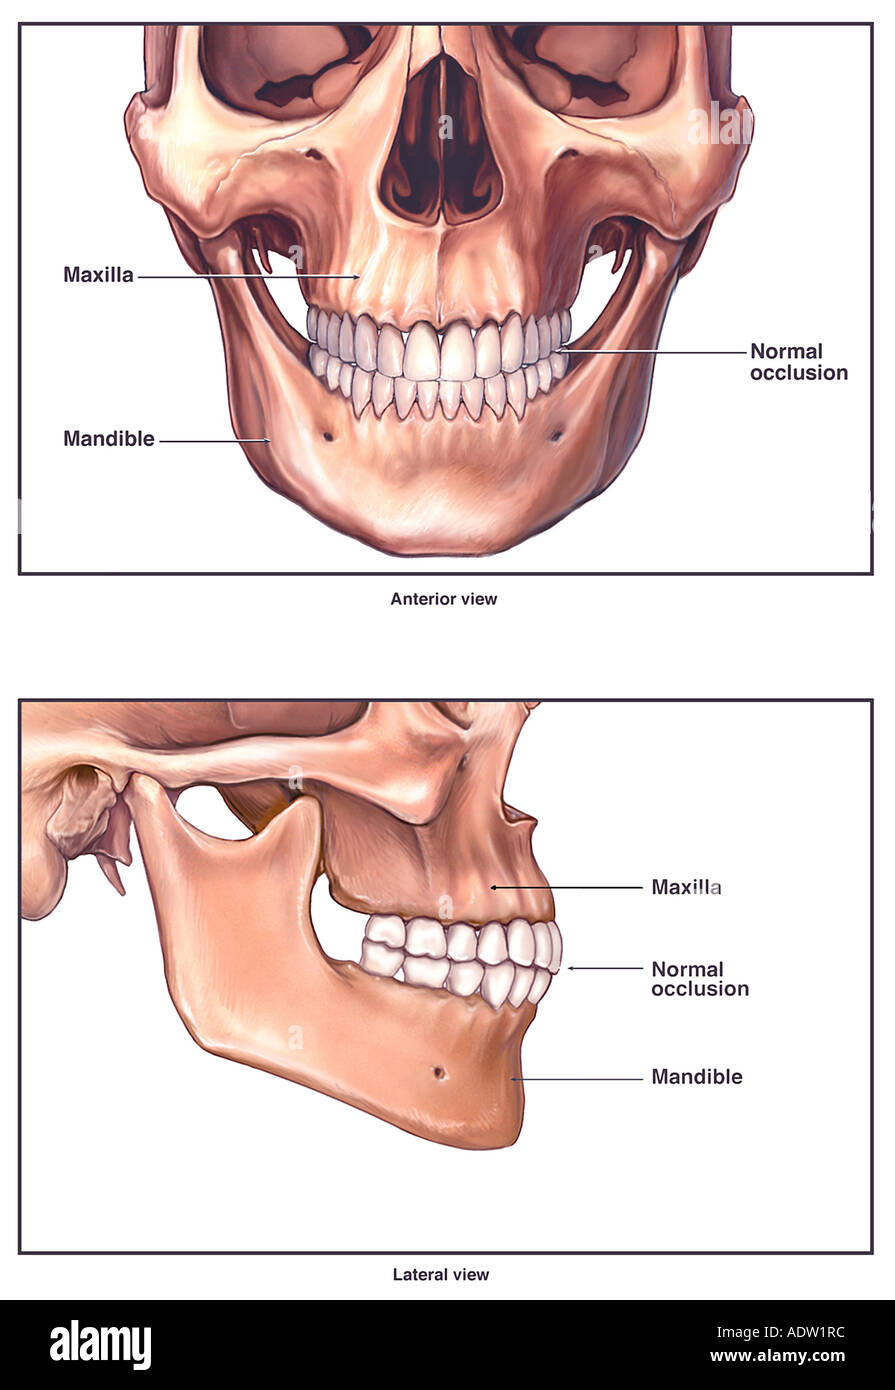 Anatomy Of The Jaw Mandible Stock Photo 7711291 Alamy